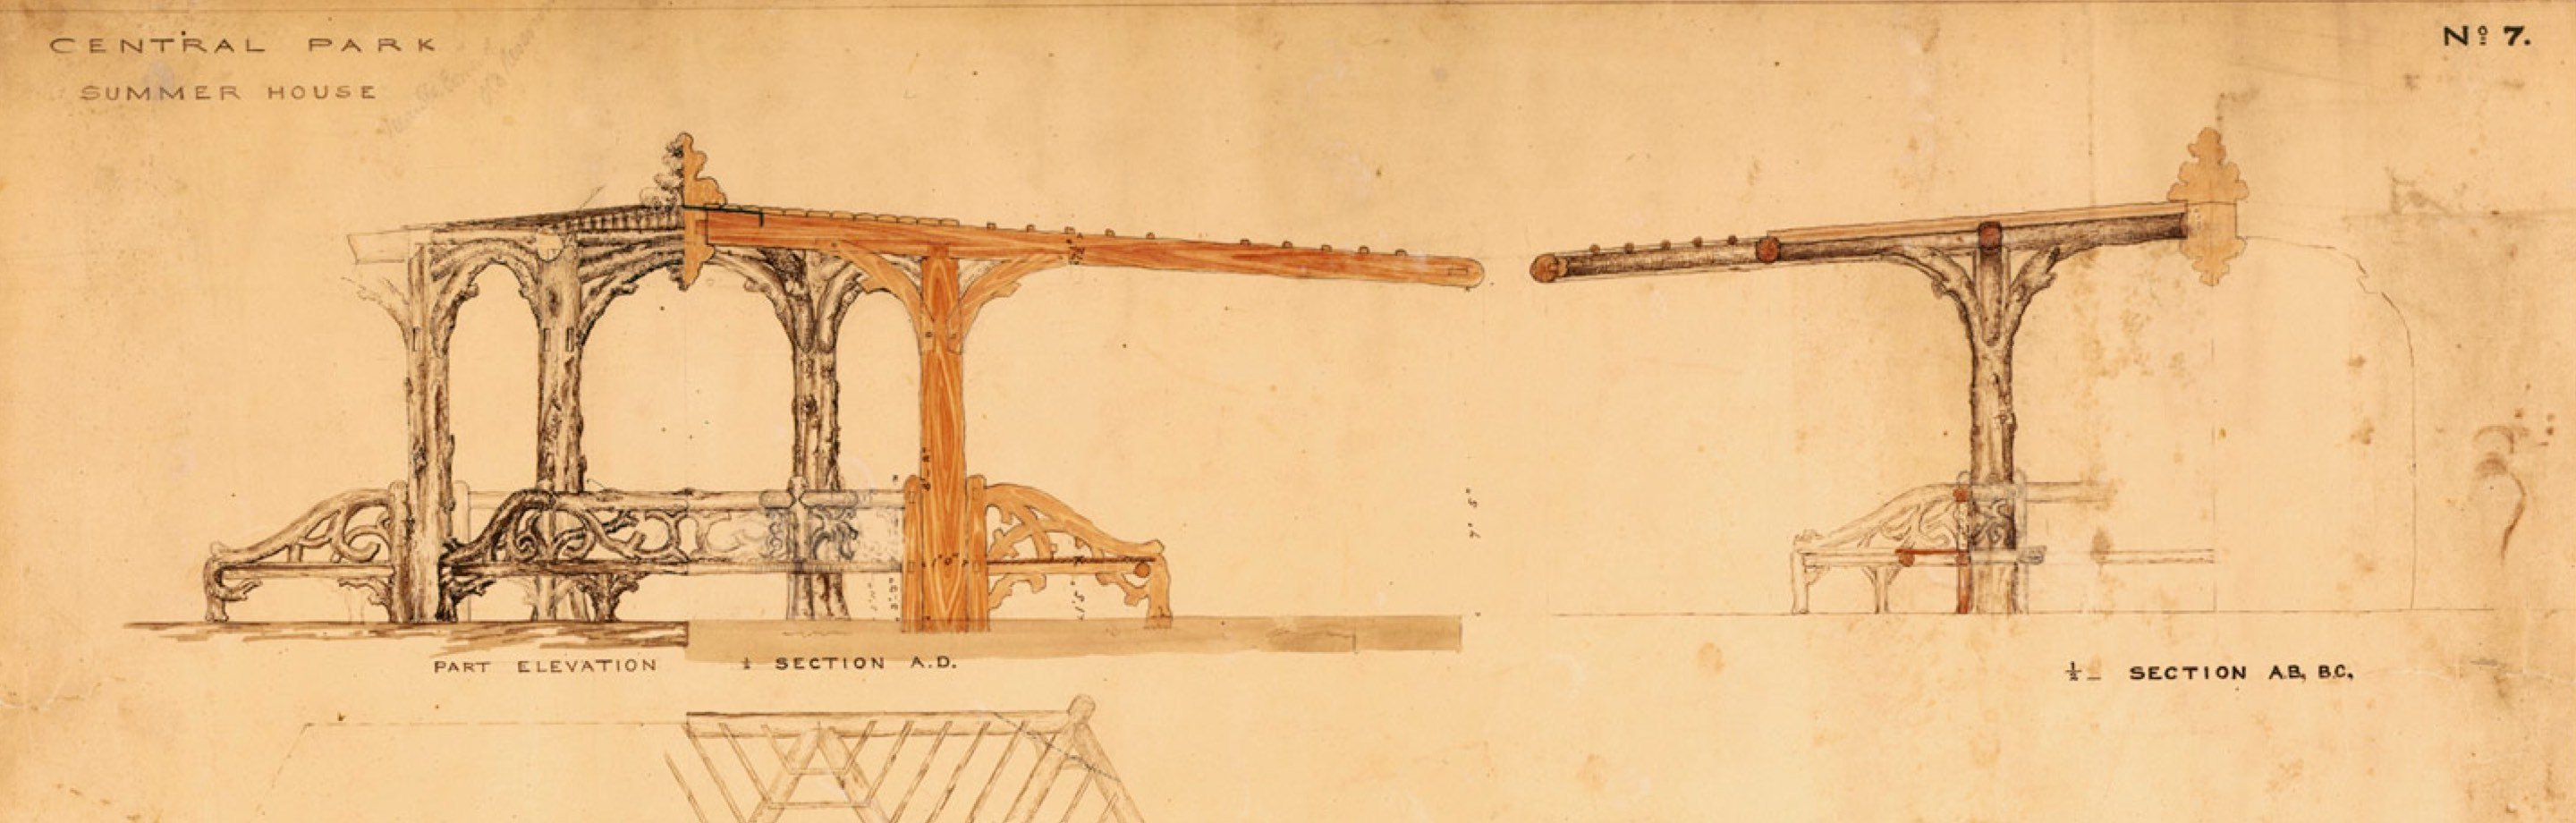 Original drawings for the Belvedere